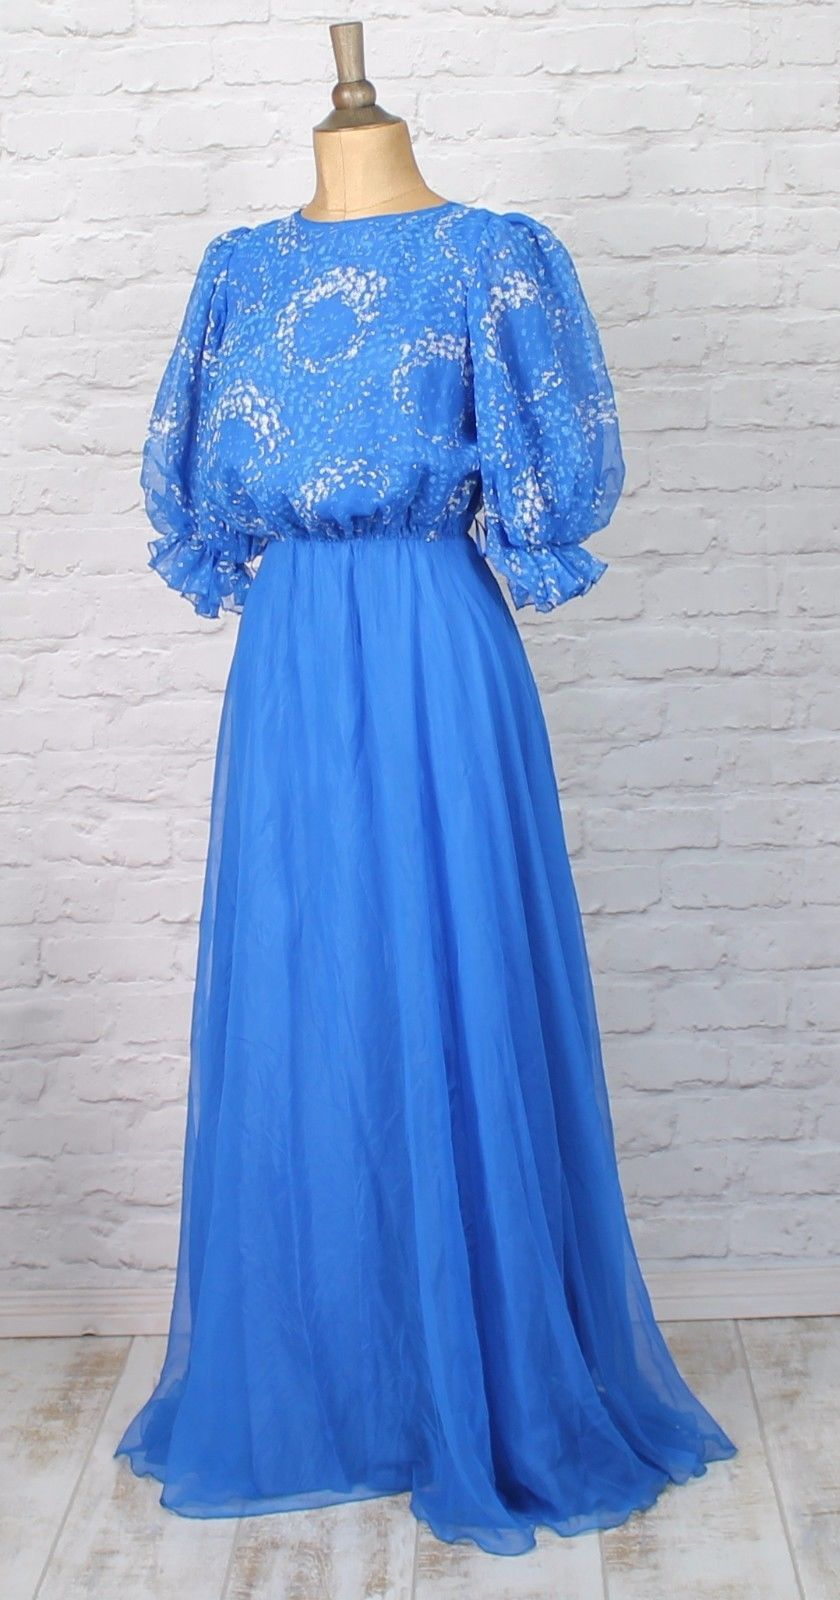 Vintage #dress gown 80s #retro victorian style evening party #wedding boho uk 10,  View more on the LINK: http://www.zeppy.io/product/gb/2/222320590921/